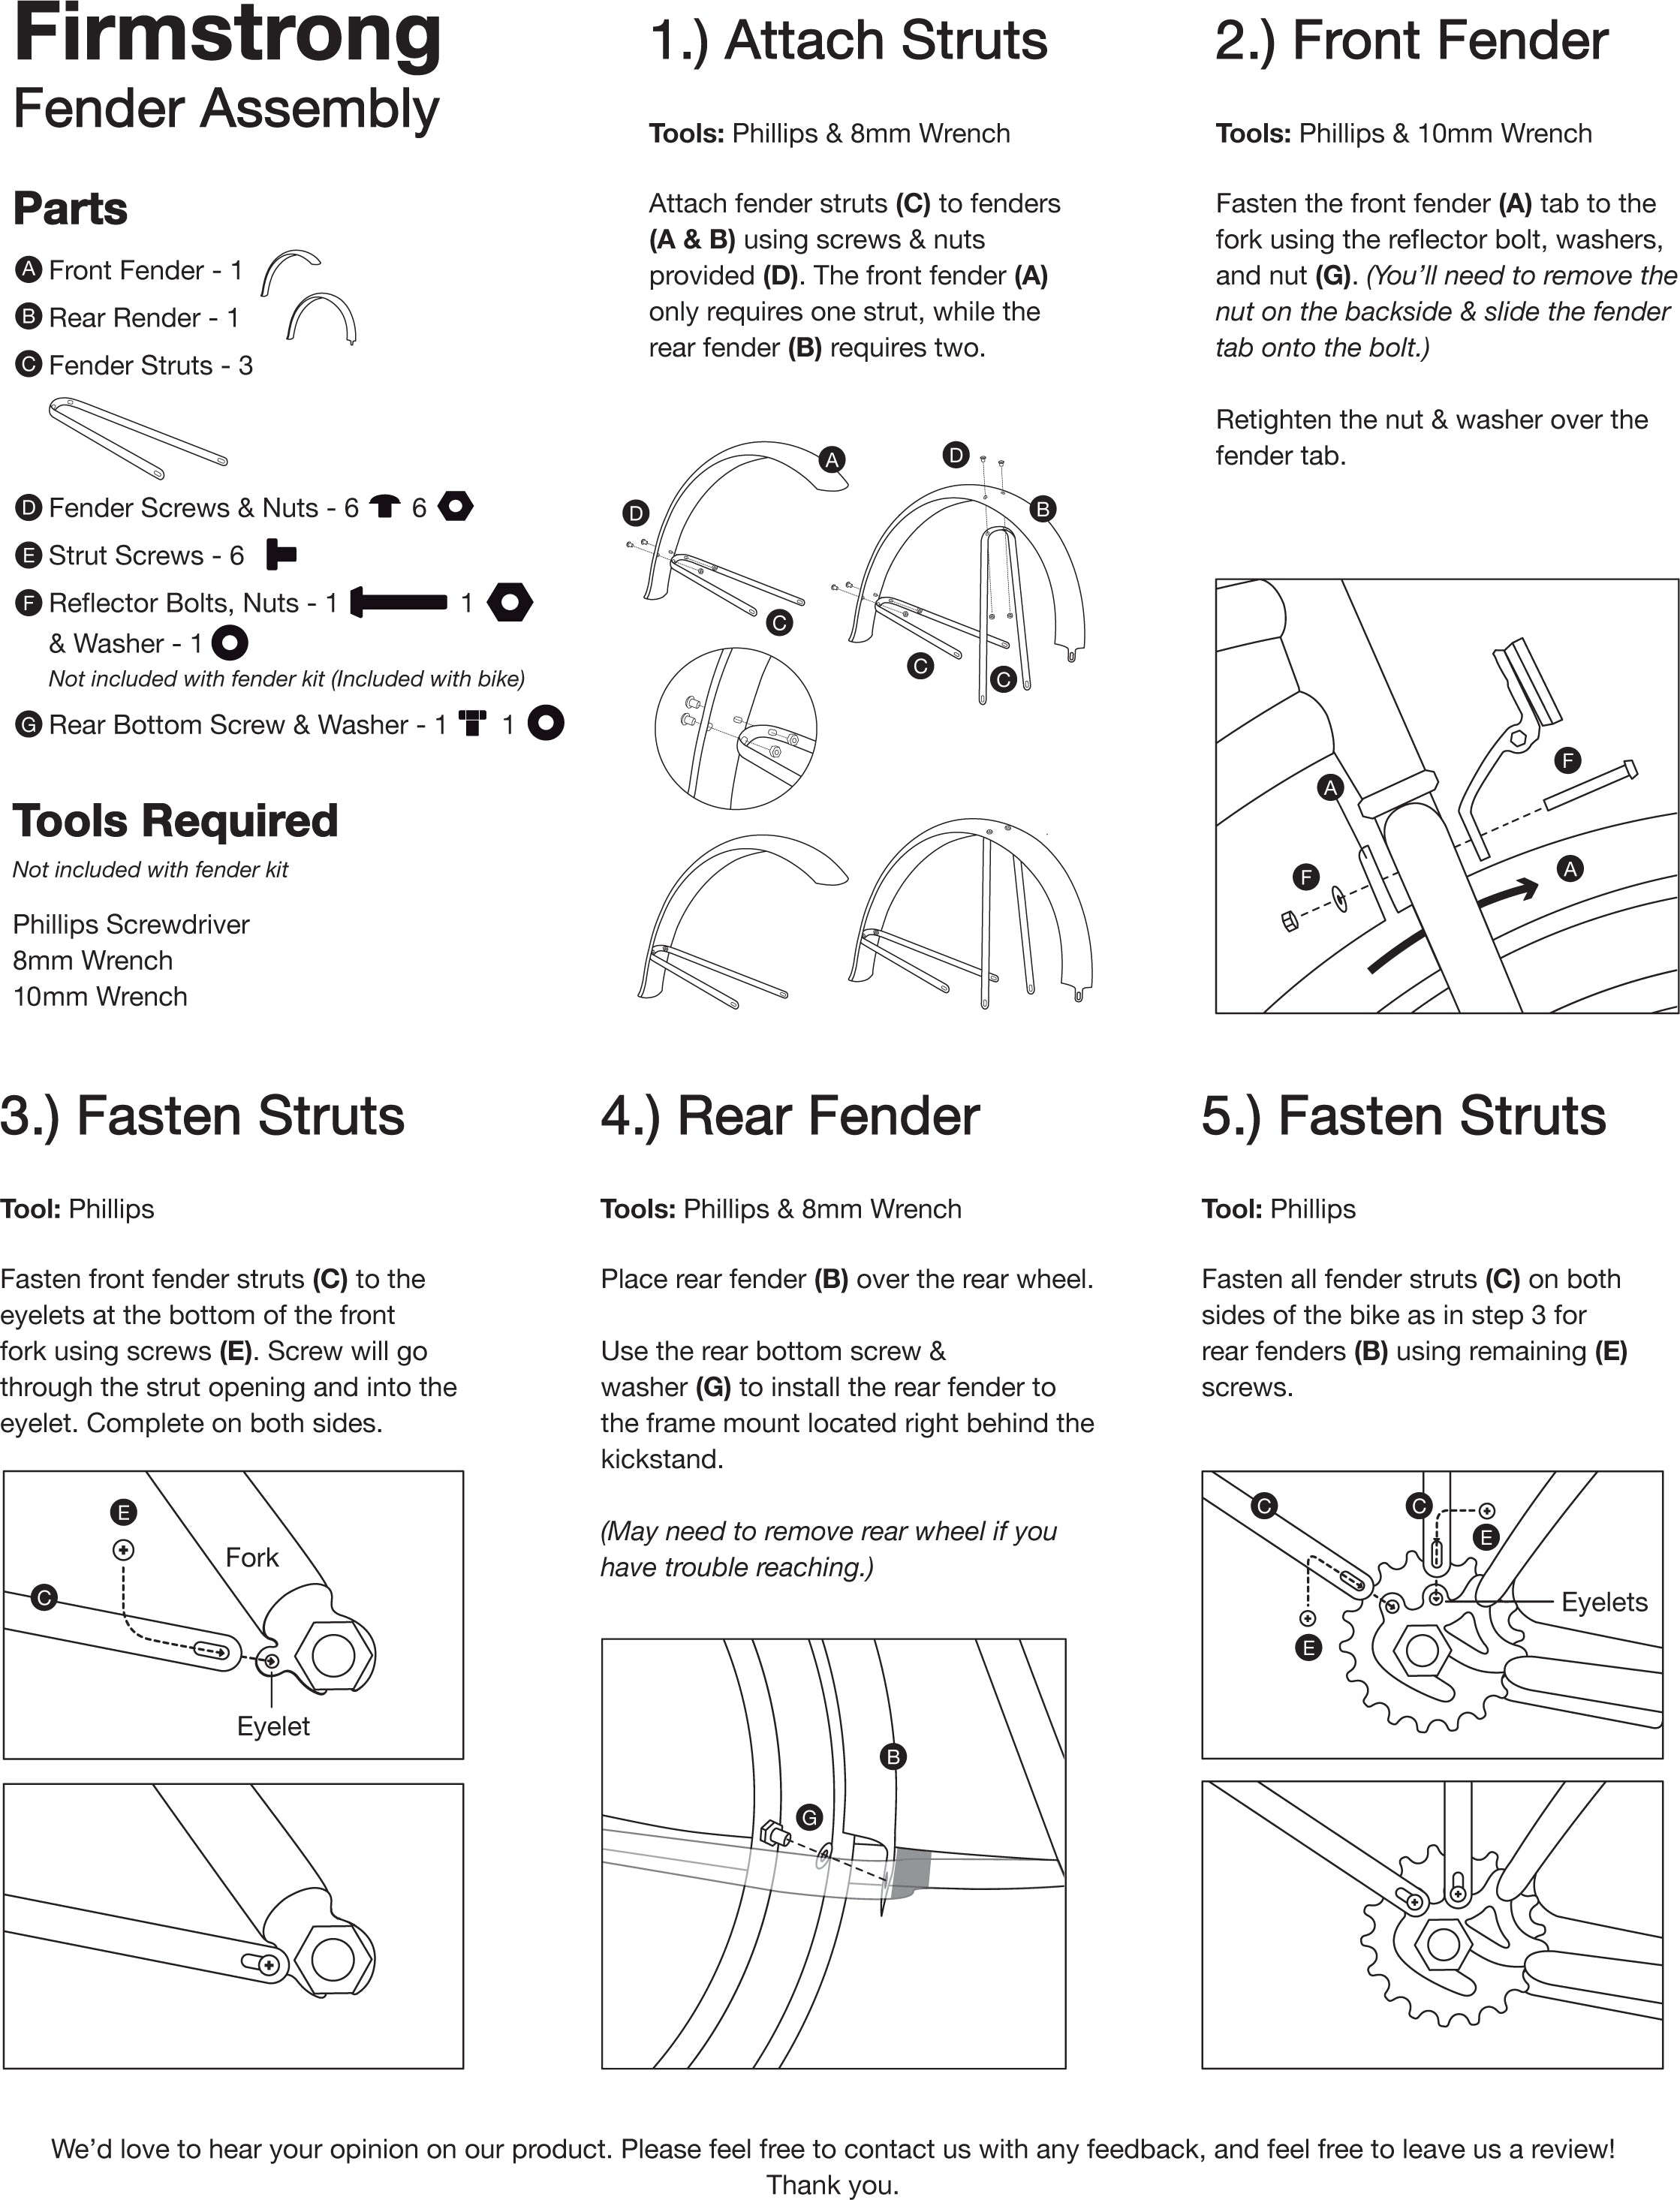 Fender Assembly Instruction